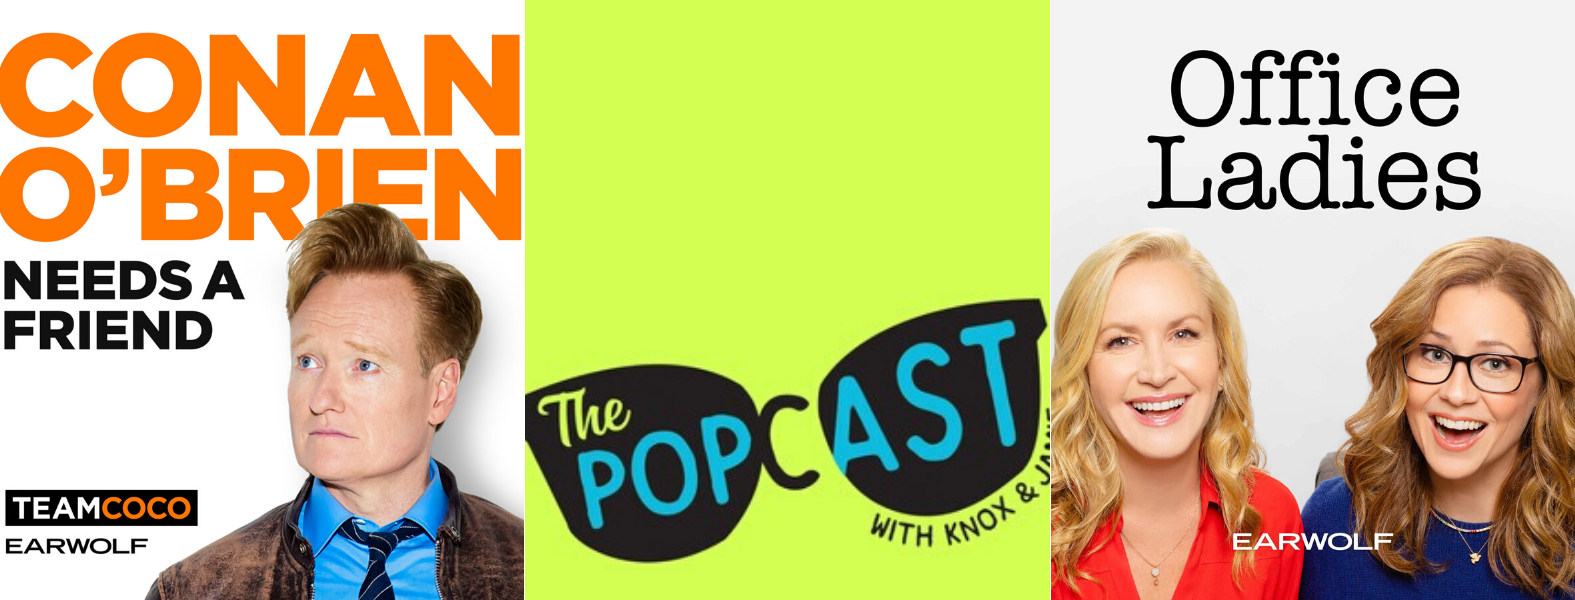 3 feel-good podcasts - office ladies, conan o brien, and the popcast